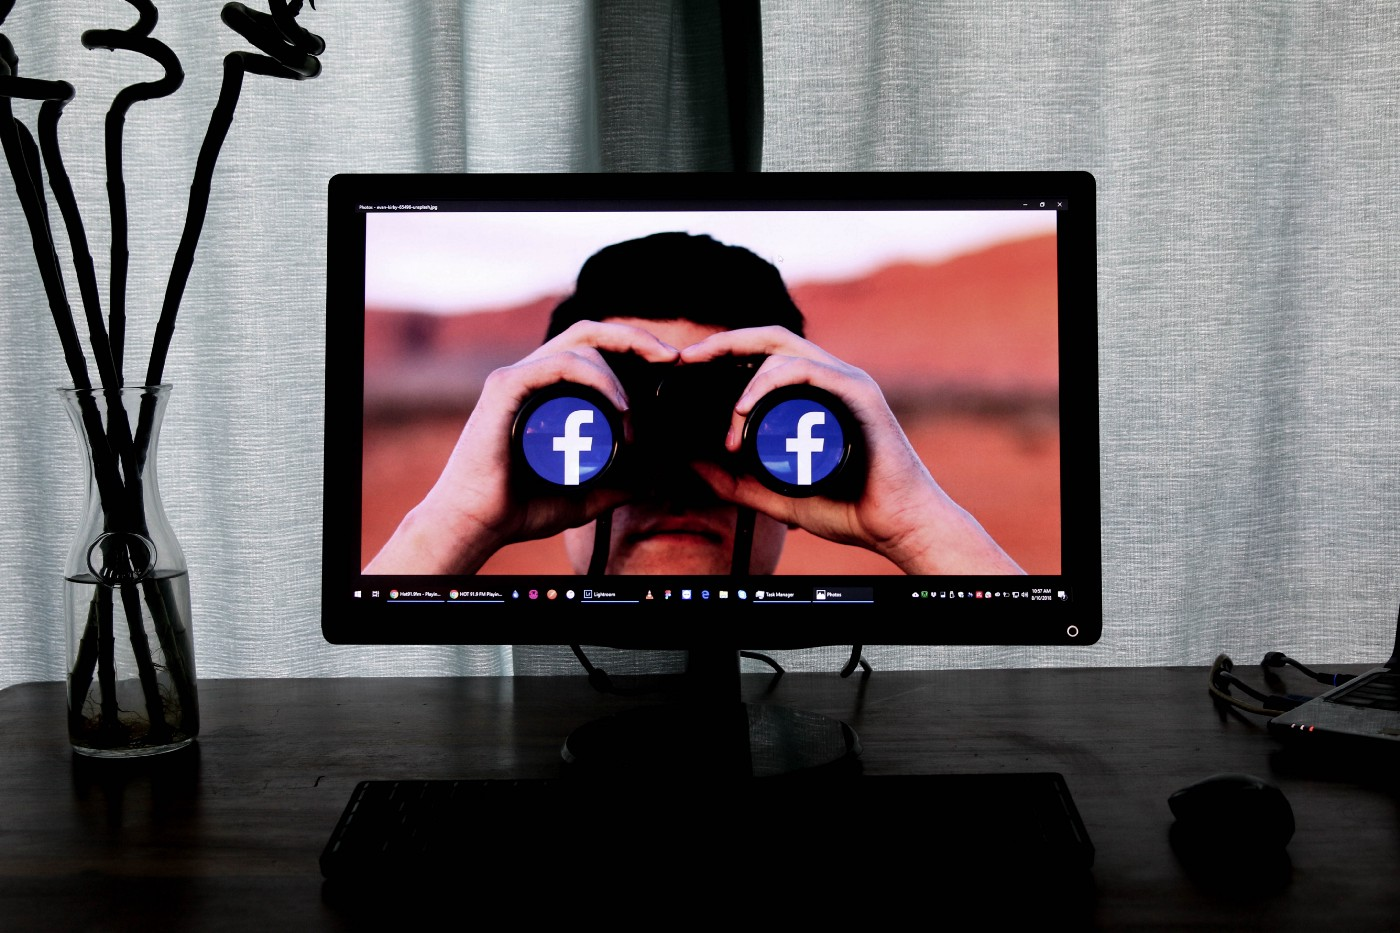 Photo of a desktop image showing someone looking through binoculars with the facebook logo in the lenses